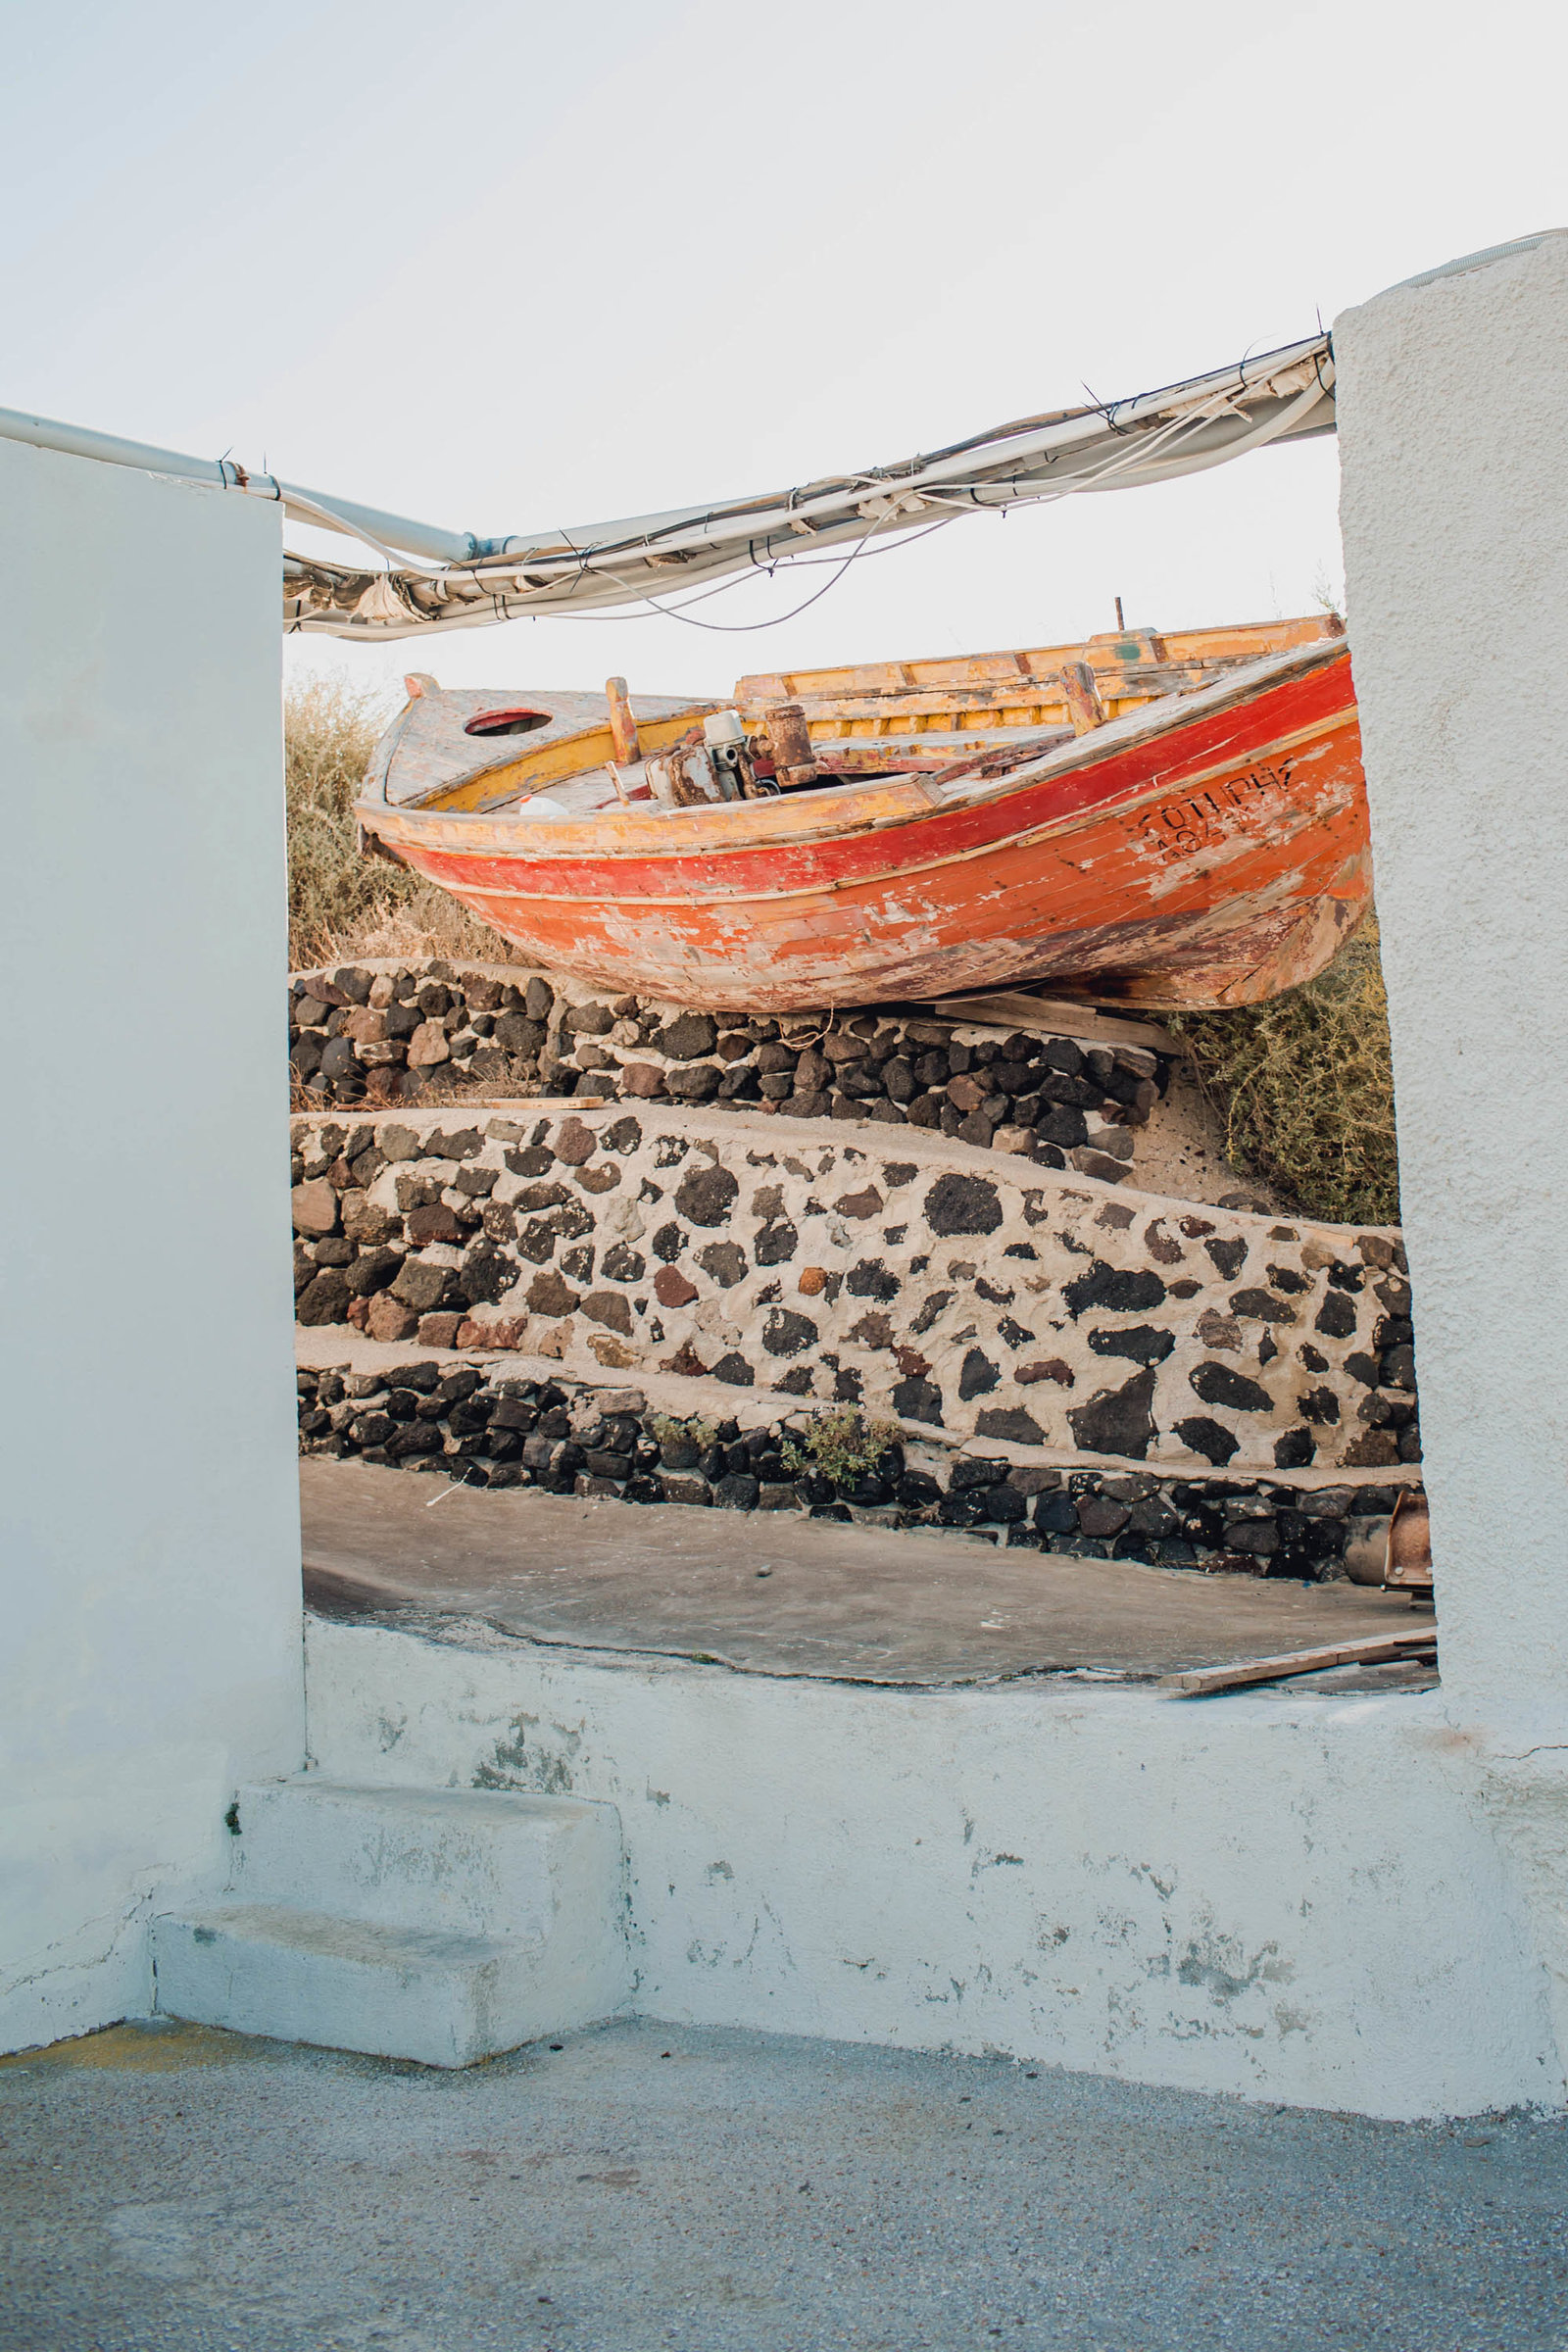 old-red-boat-destination-travel-santorini-wedding-kate-timbers-photo-2633